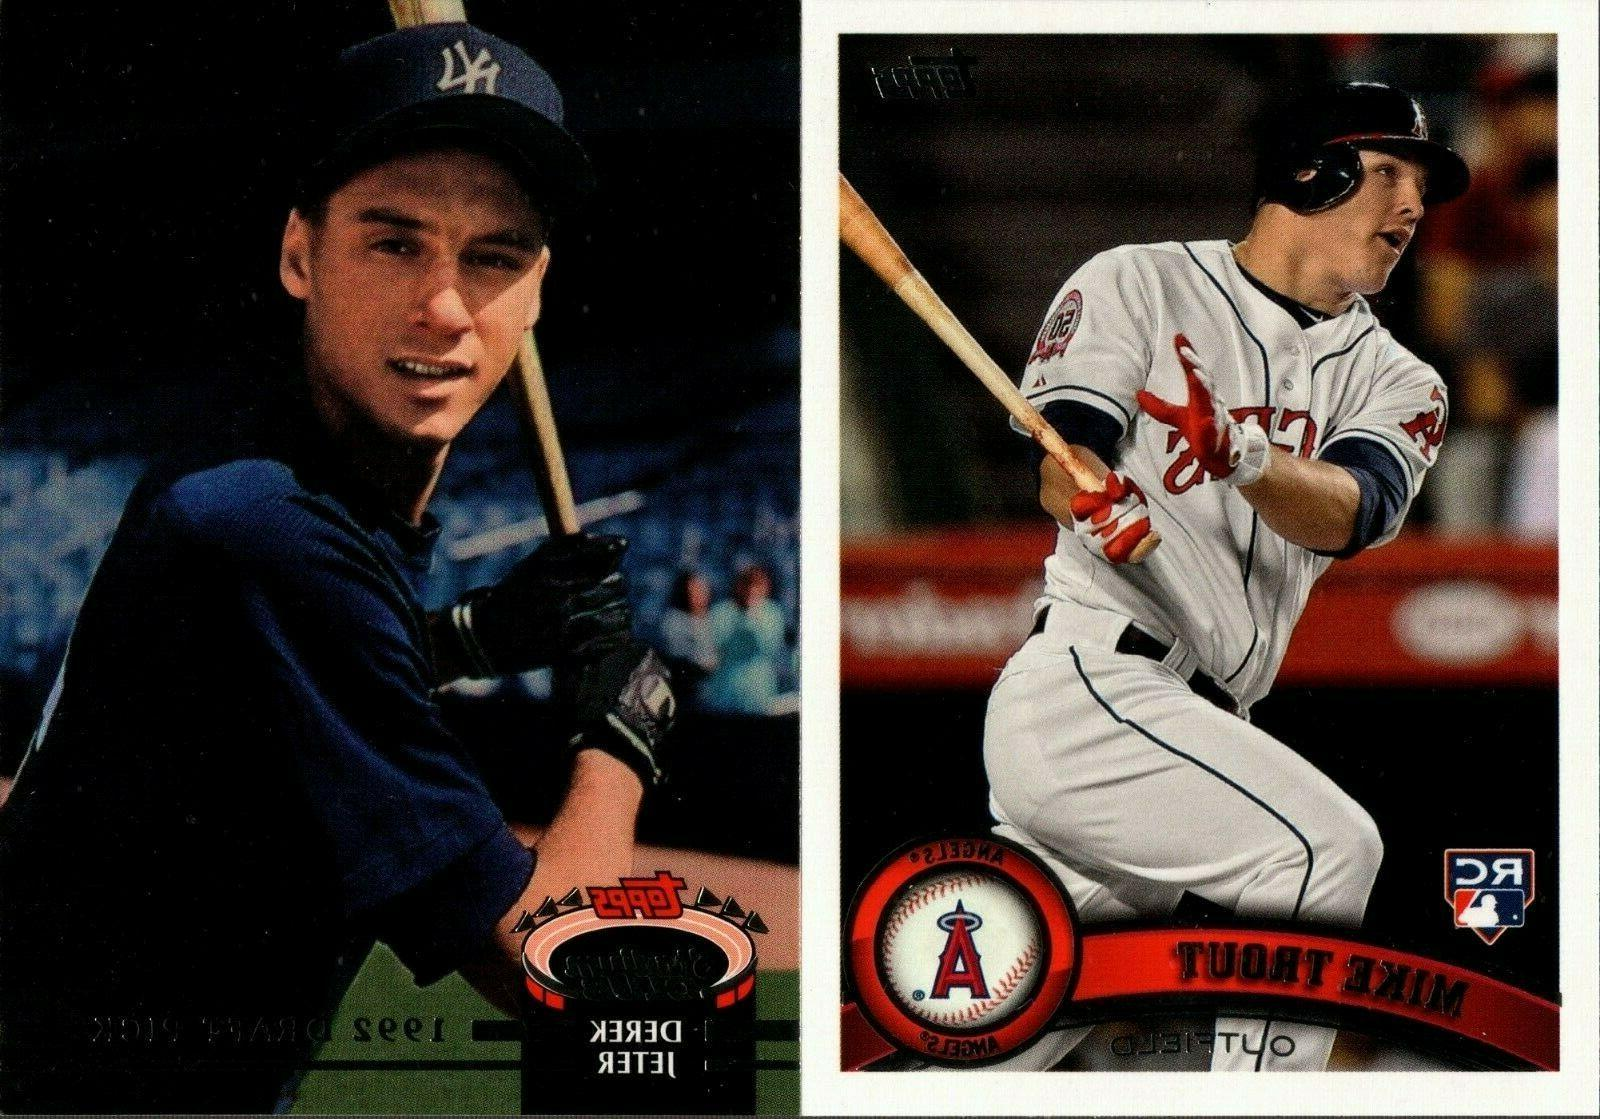 2019 topps series 2 iconic card reprint